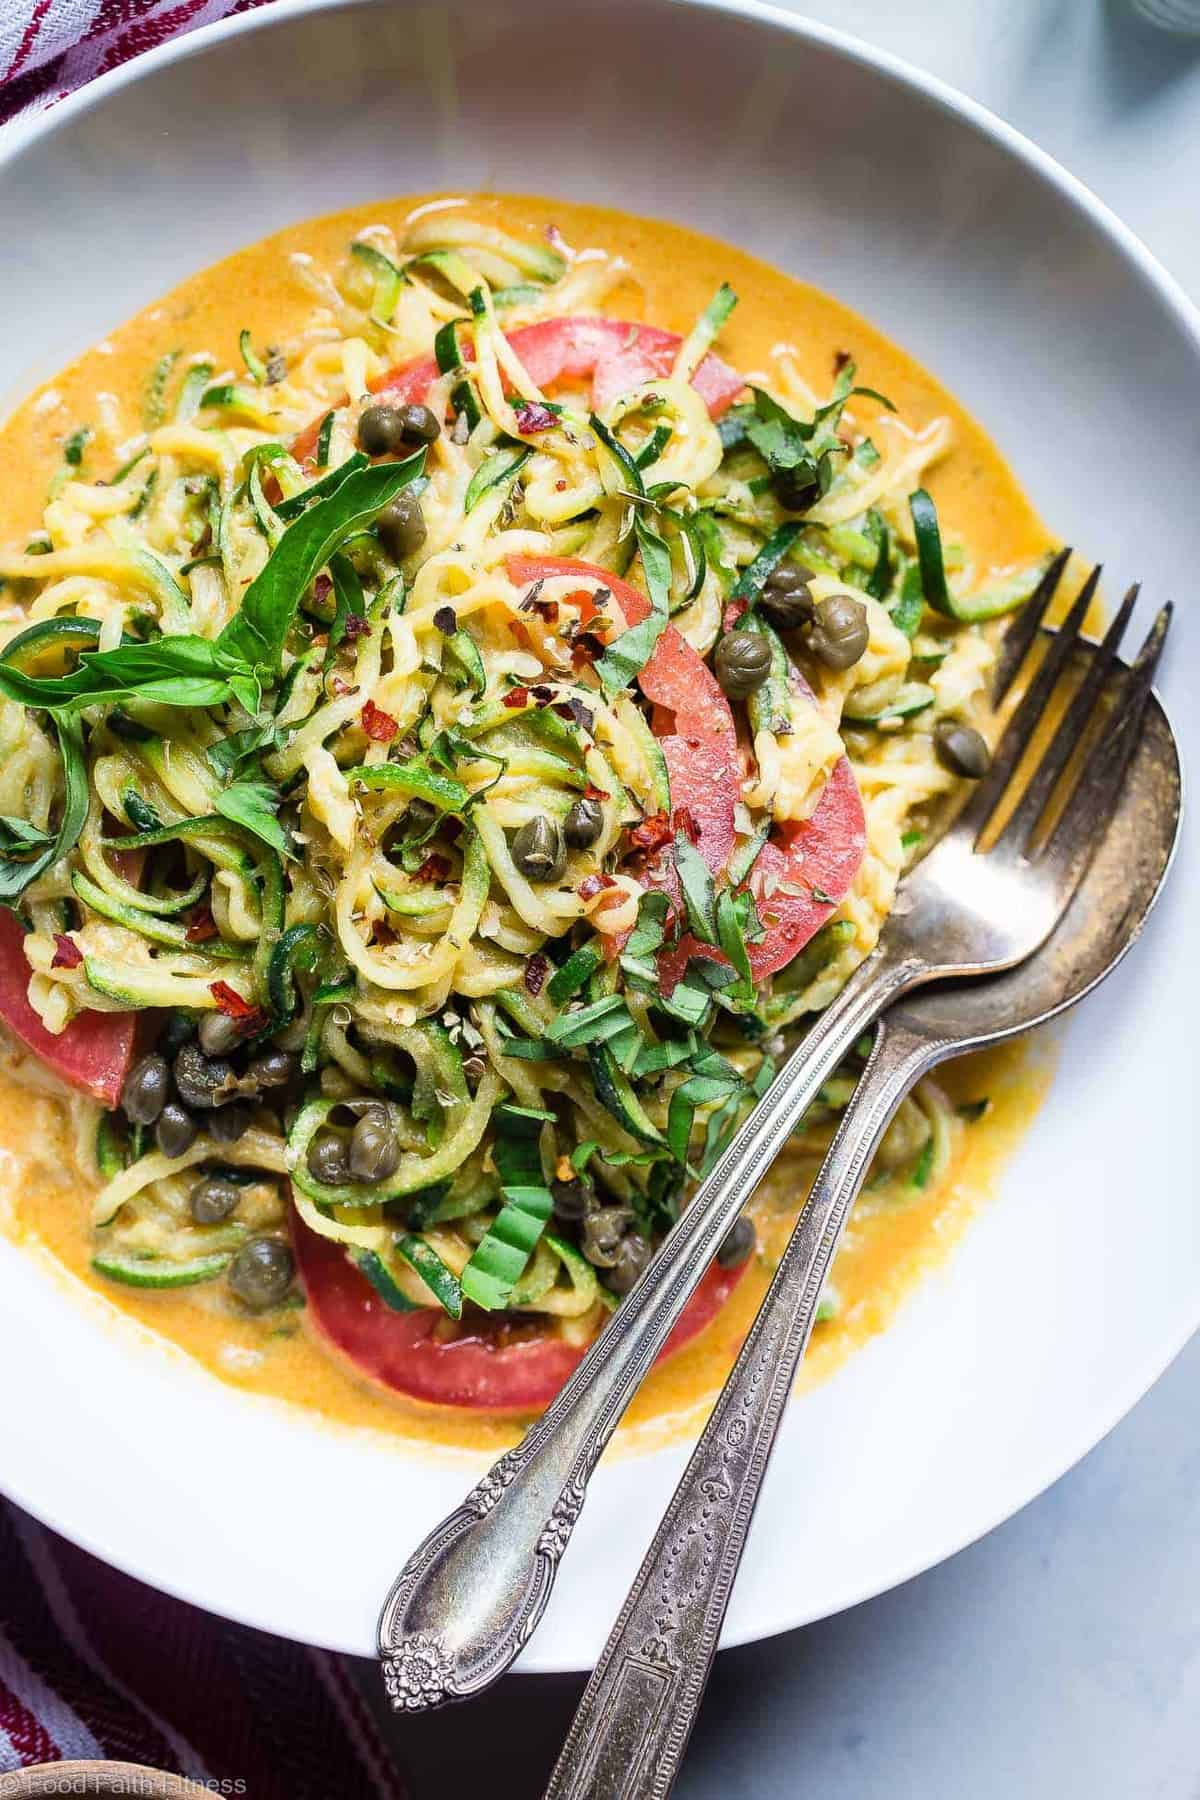 5 Minute Cheesy Zucchetti Bowl - A healthy, gluten free and low carb lunch or dinner! A vegan and whole30 friendly meal, packed with veggies and fiber that is under 400 calories! | #Foodfaithfitness | #Vegan #Paleo #Glutenfree #Healthy #Spiralized